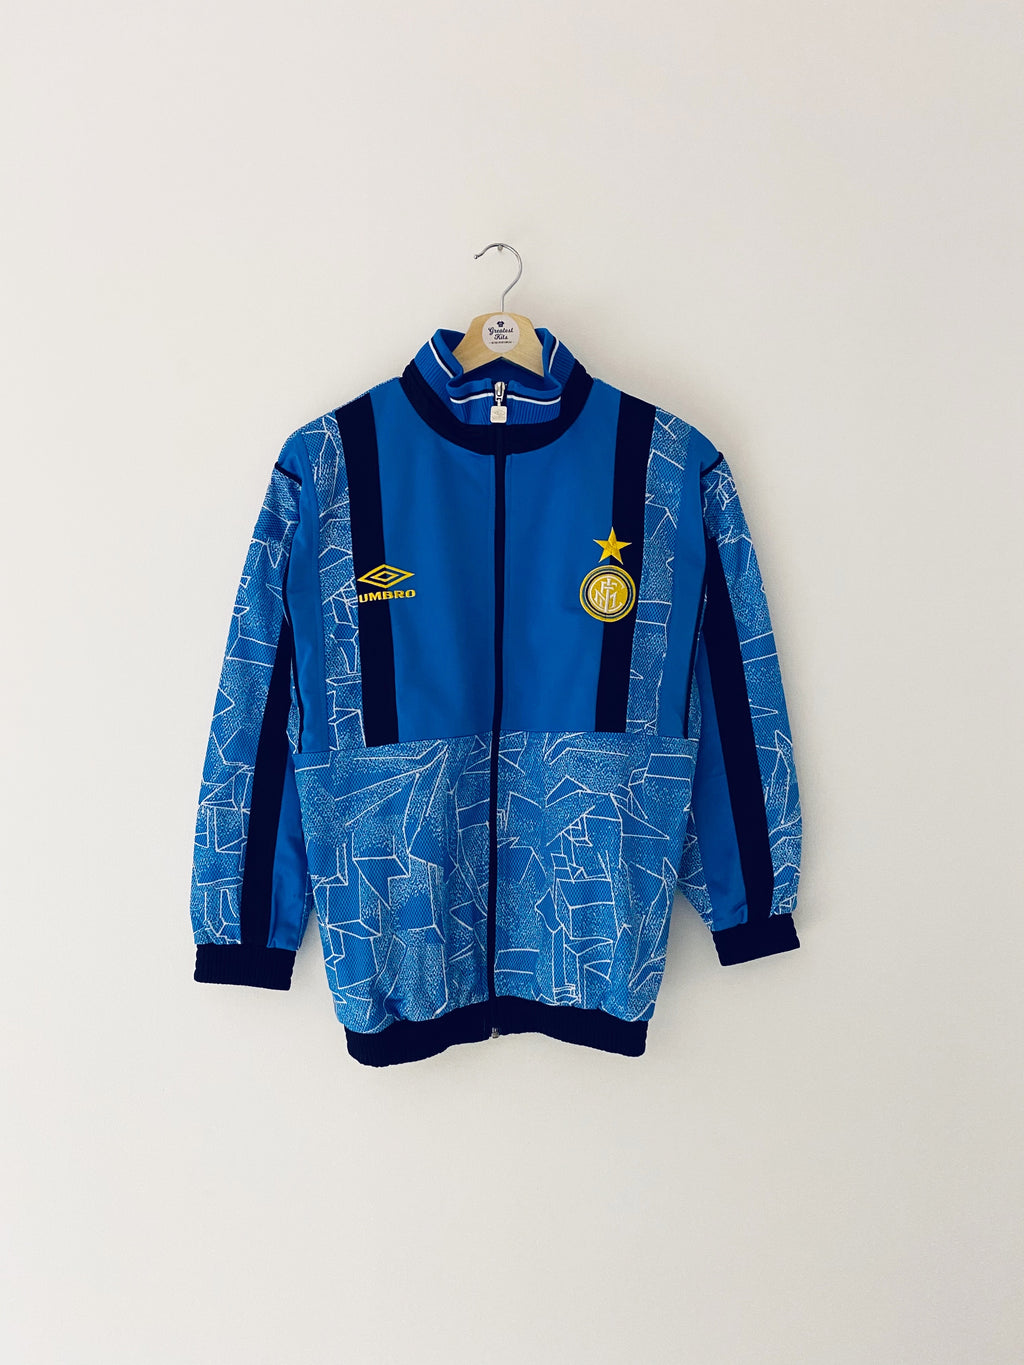 1994/95 Inter Milan Track Jacket (L.Boys) 9/10